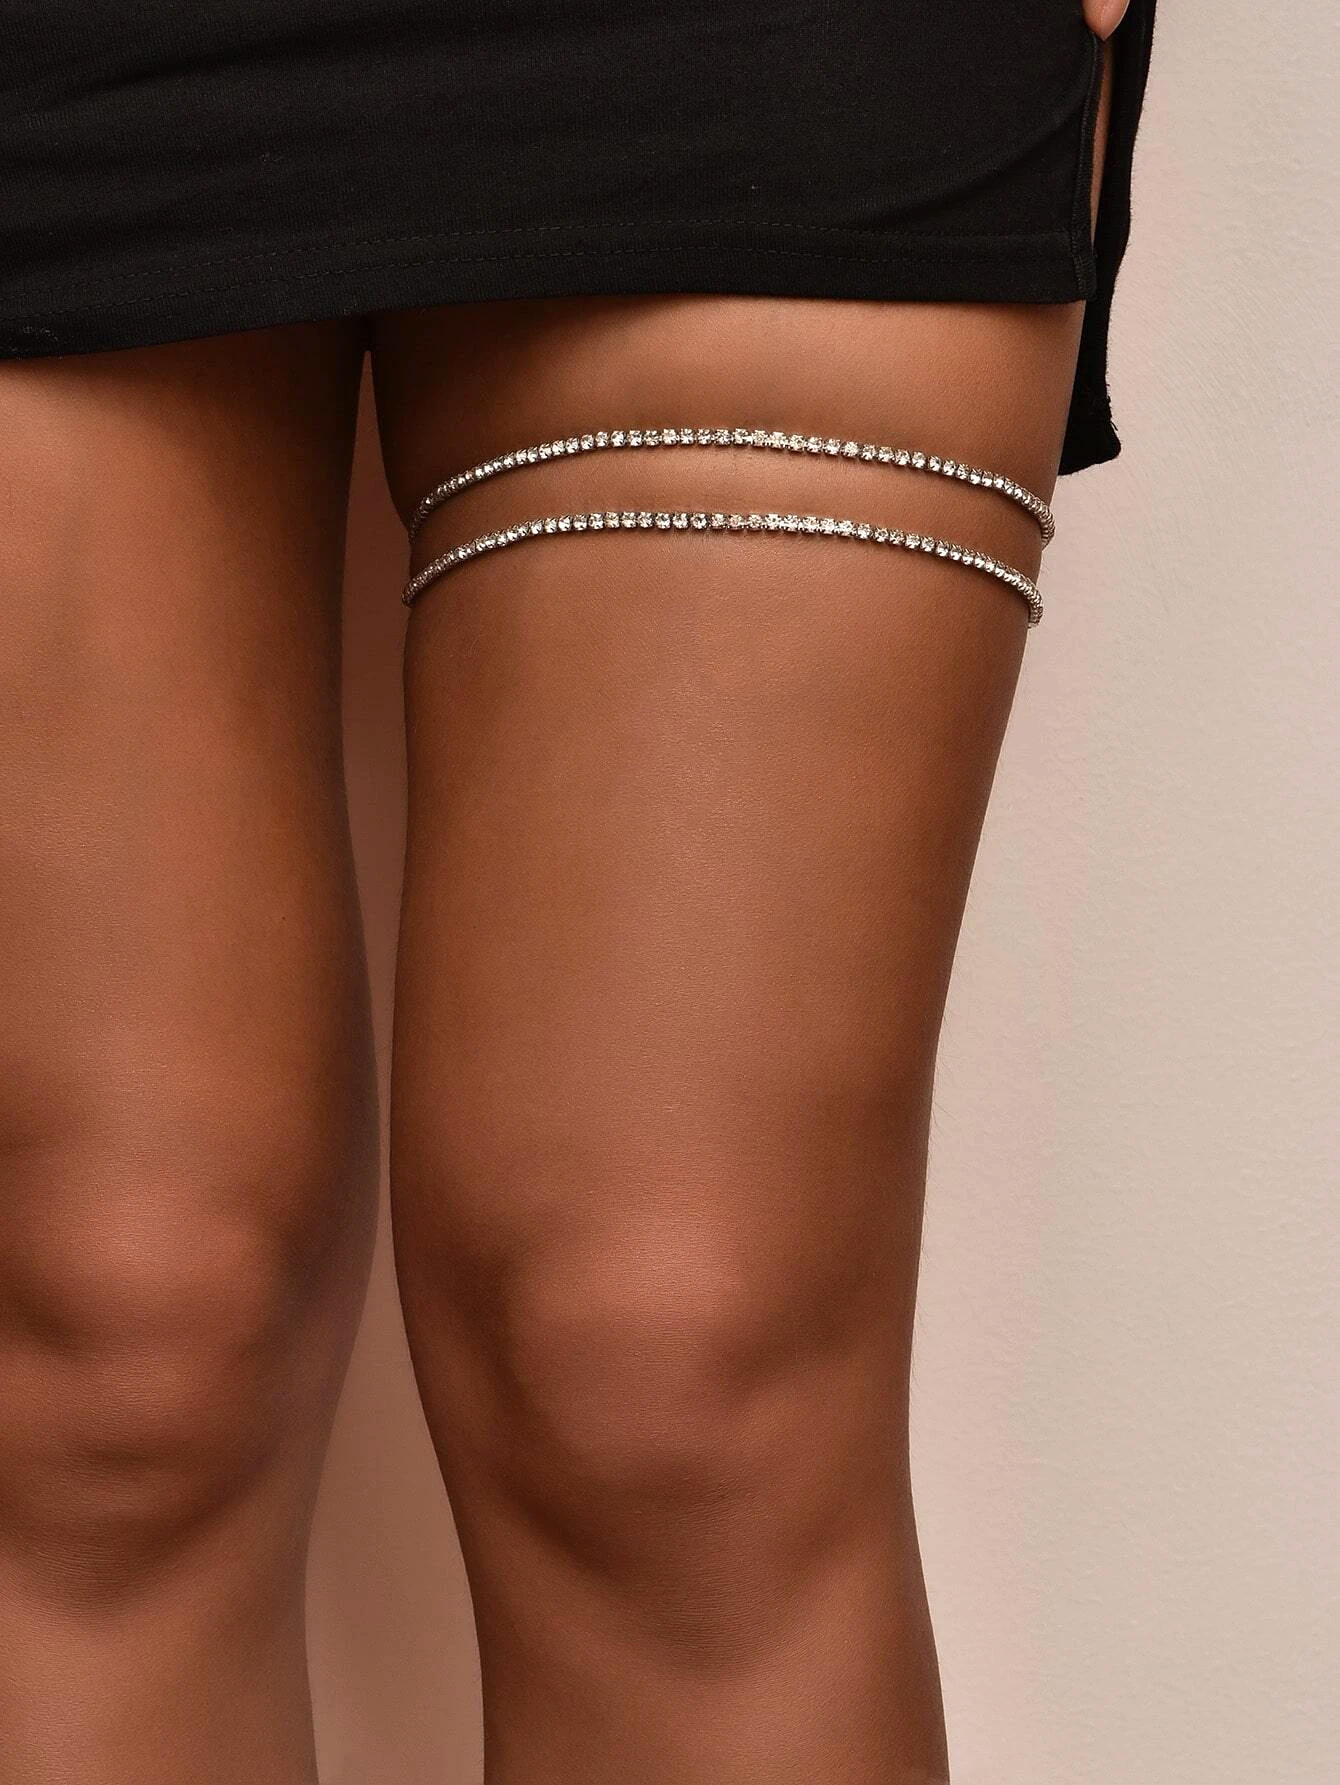 Diamante Leg Chain Set